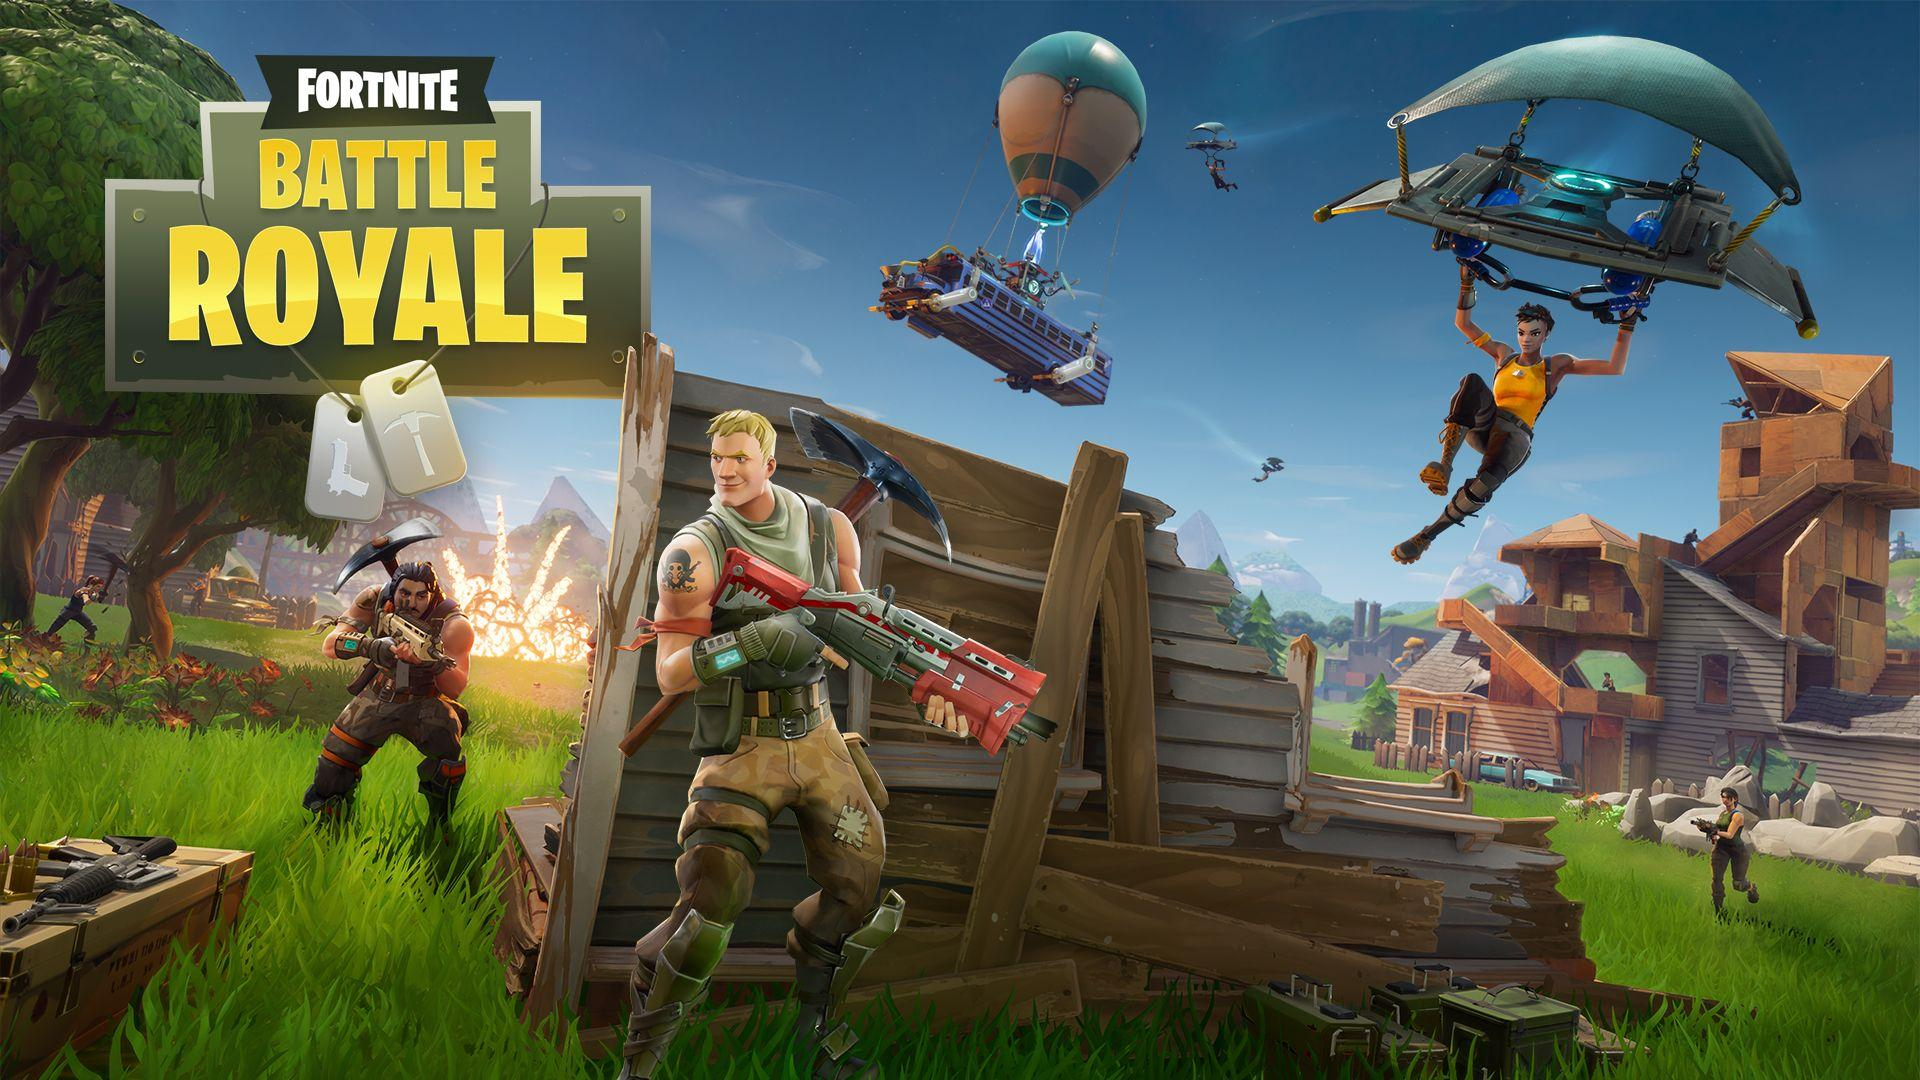 Fortnite Battle Royale Wallpapers Wallpaper Cave - fortnite battle royale full hd wallpaper and background